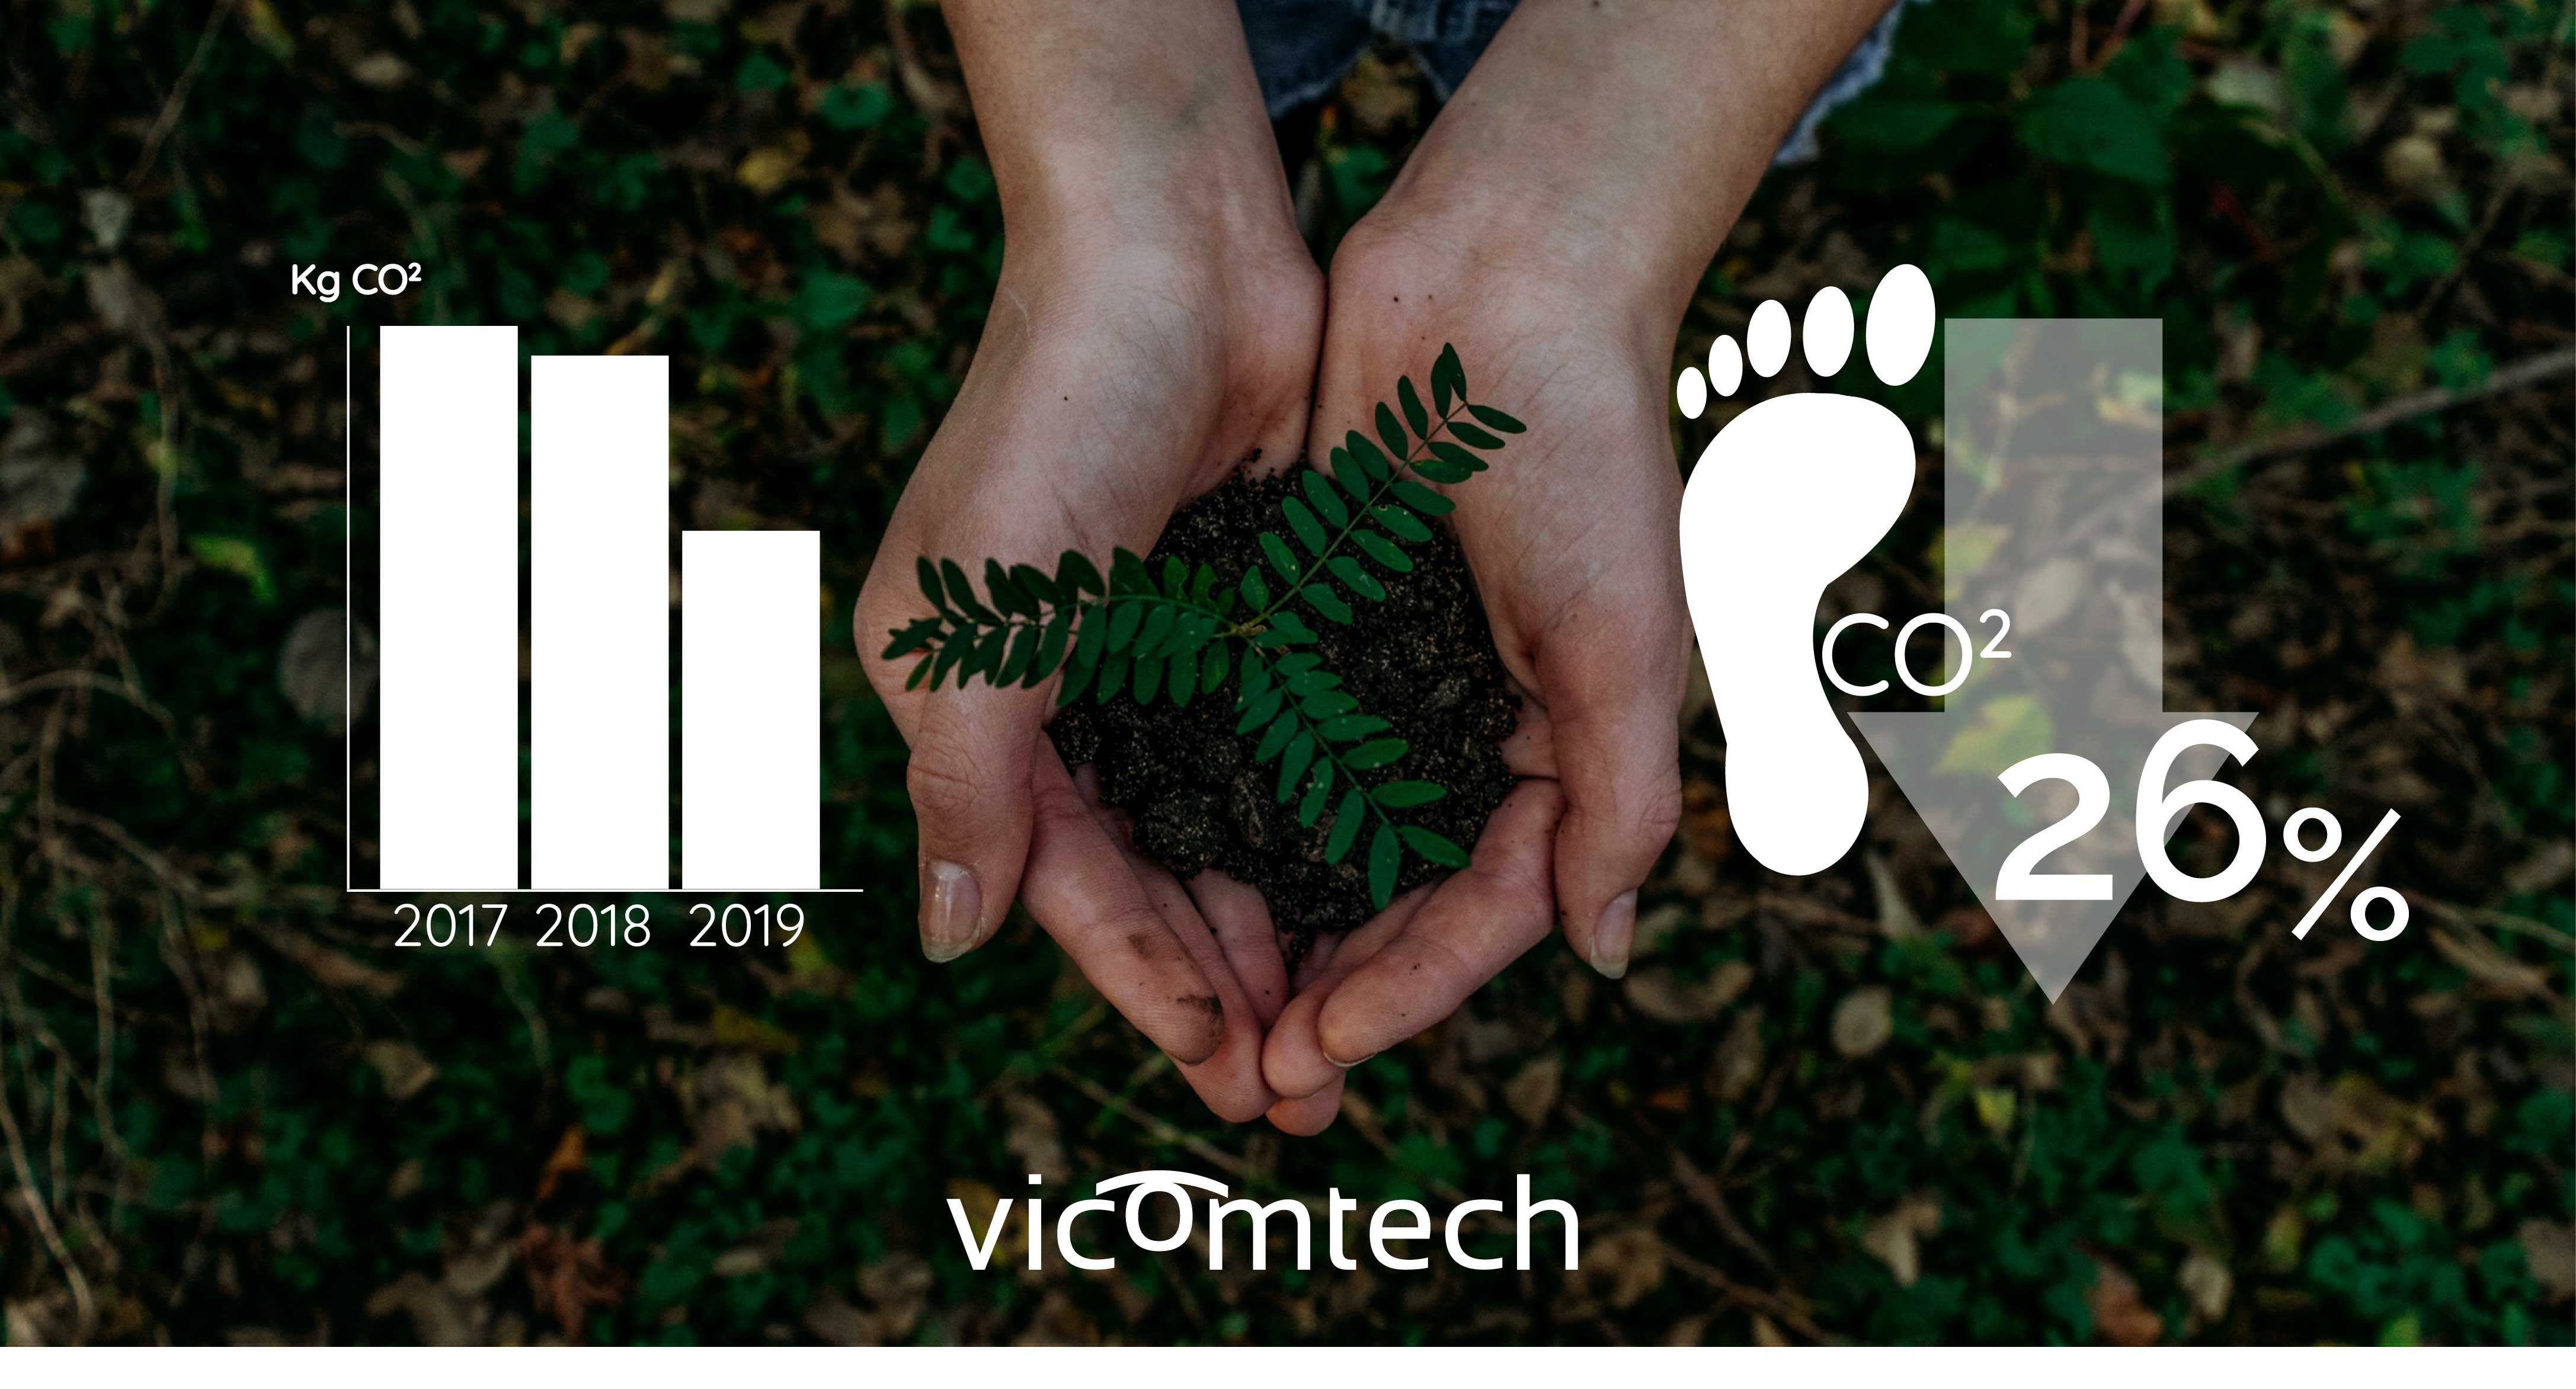 In 2019, Vicomtech's carbon footprint has been reduced by 26%